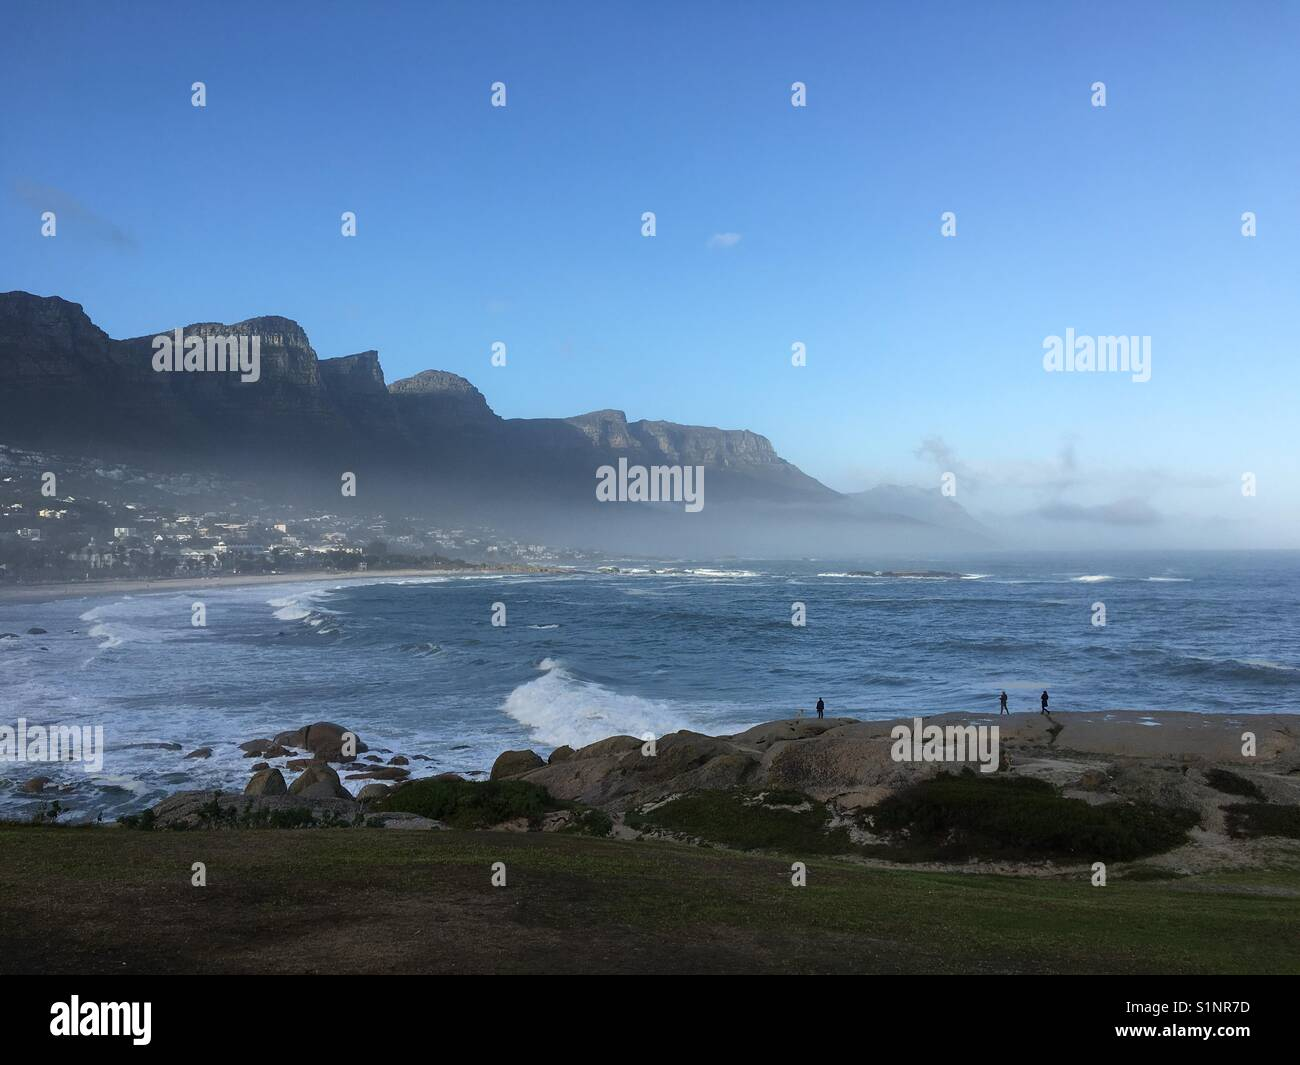 Atlantic Seaboard, Cape Town, Western Cape, South Africa - Stock Image